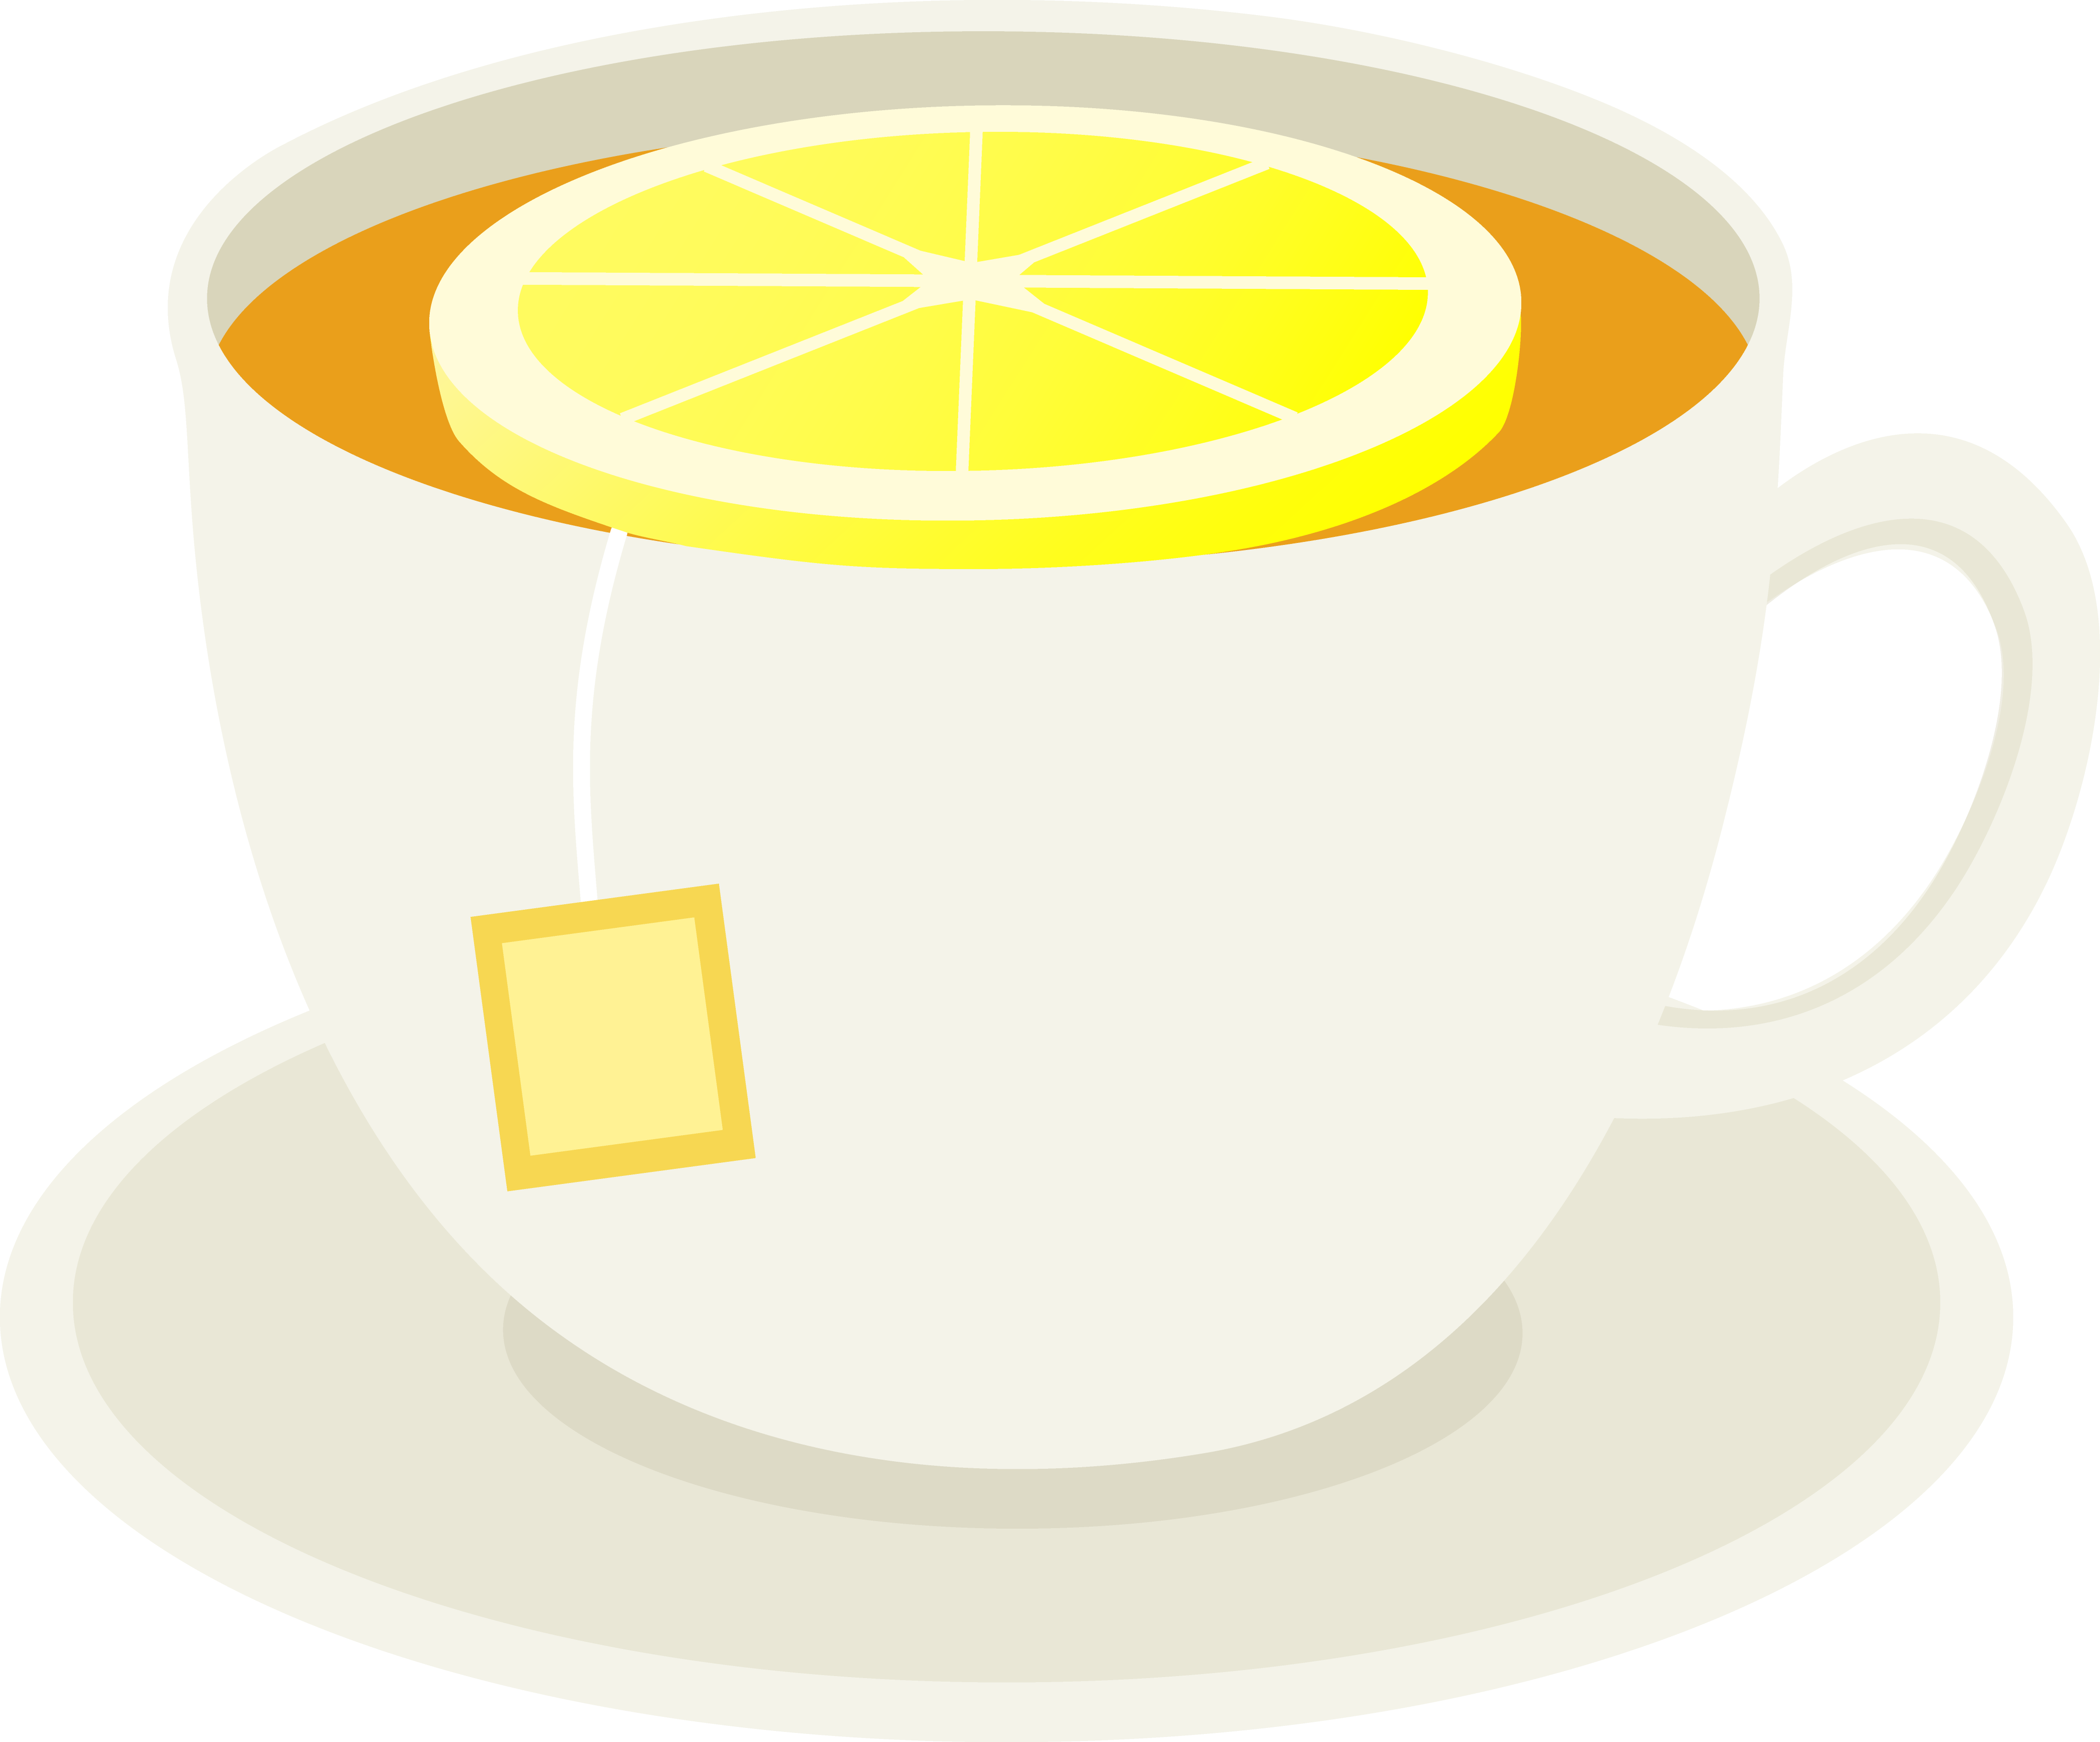 Cup of Tea With Lemon Slice.